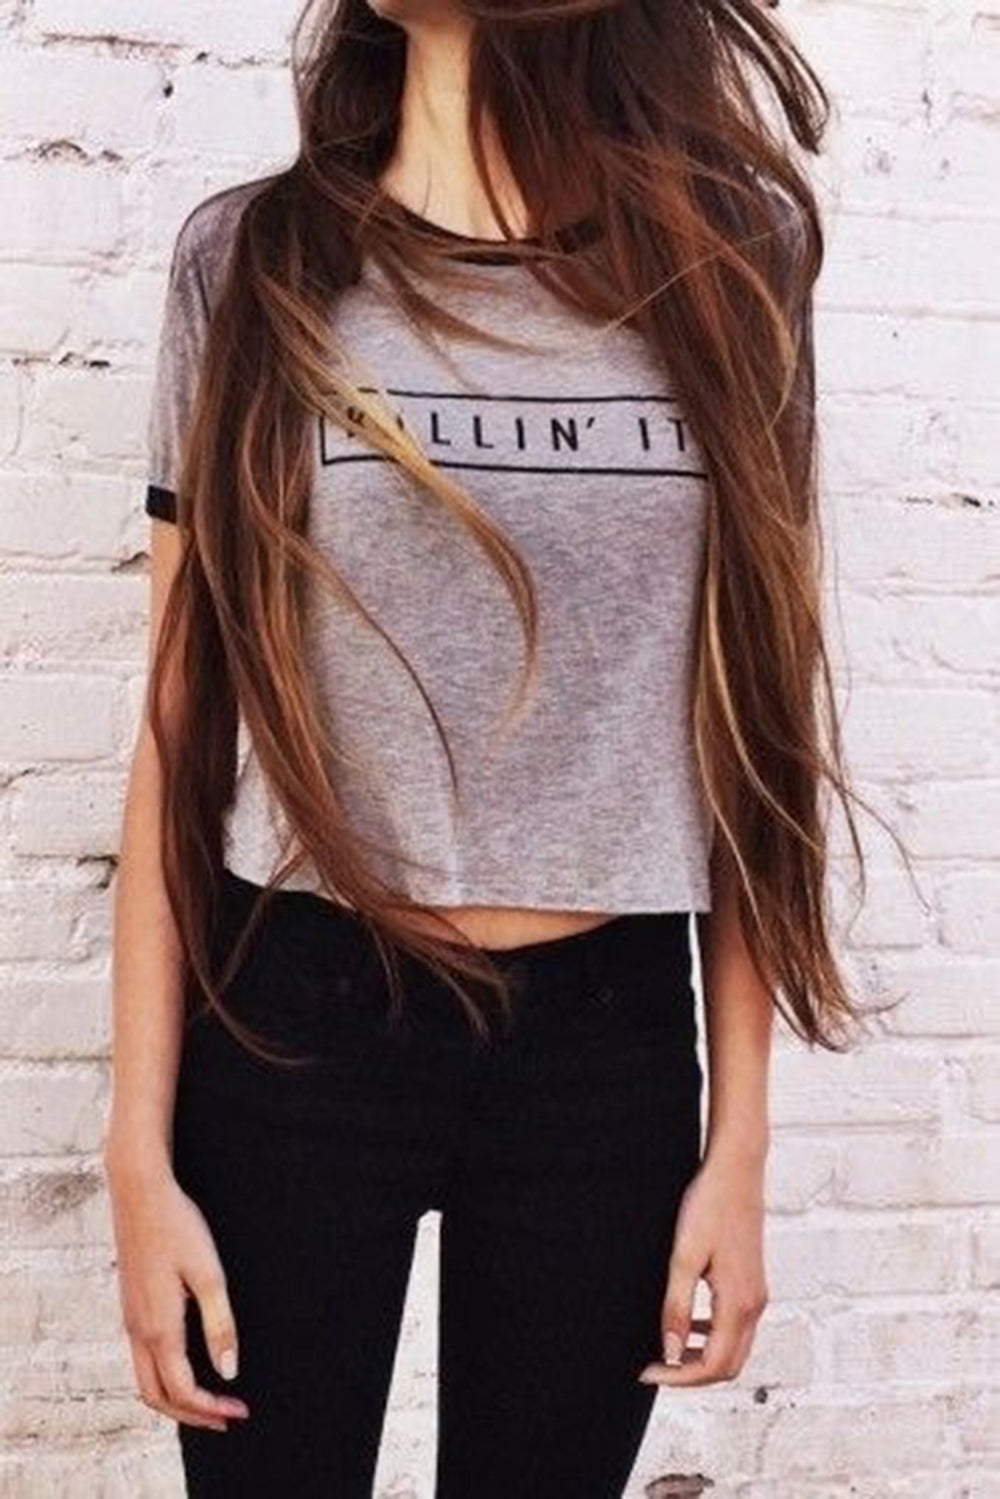 Killin It Grey Fashion  Women Summer Top  Letters Print T shirt Sexy Slim Funny Top Tee  Black Crop Tops